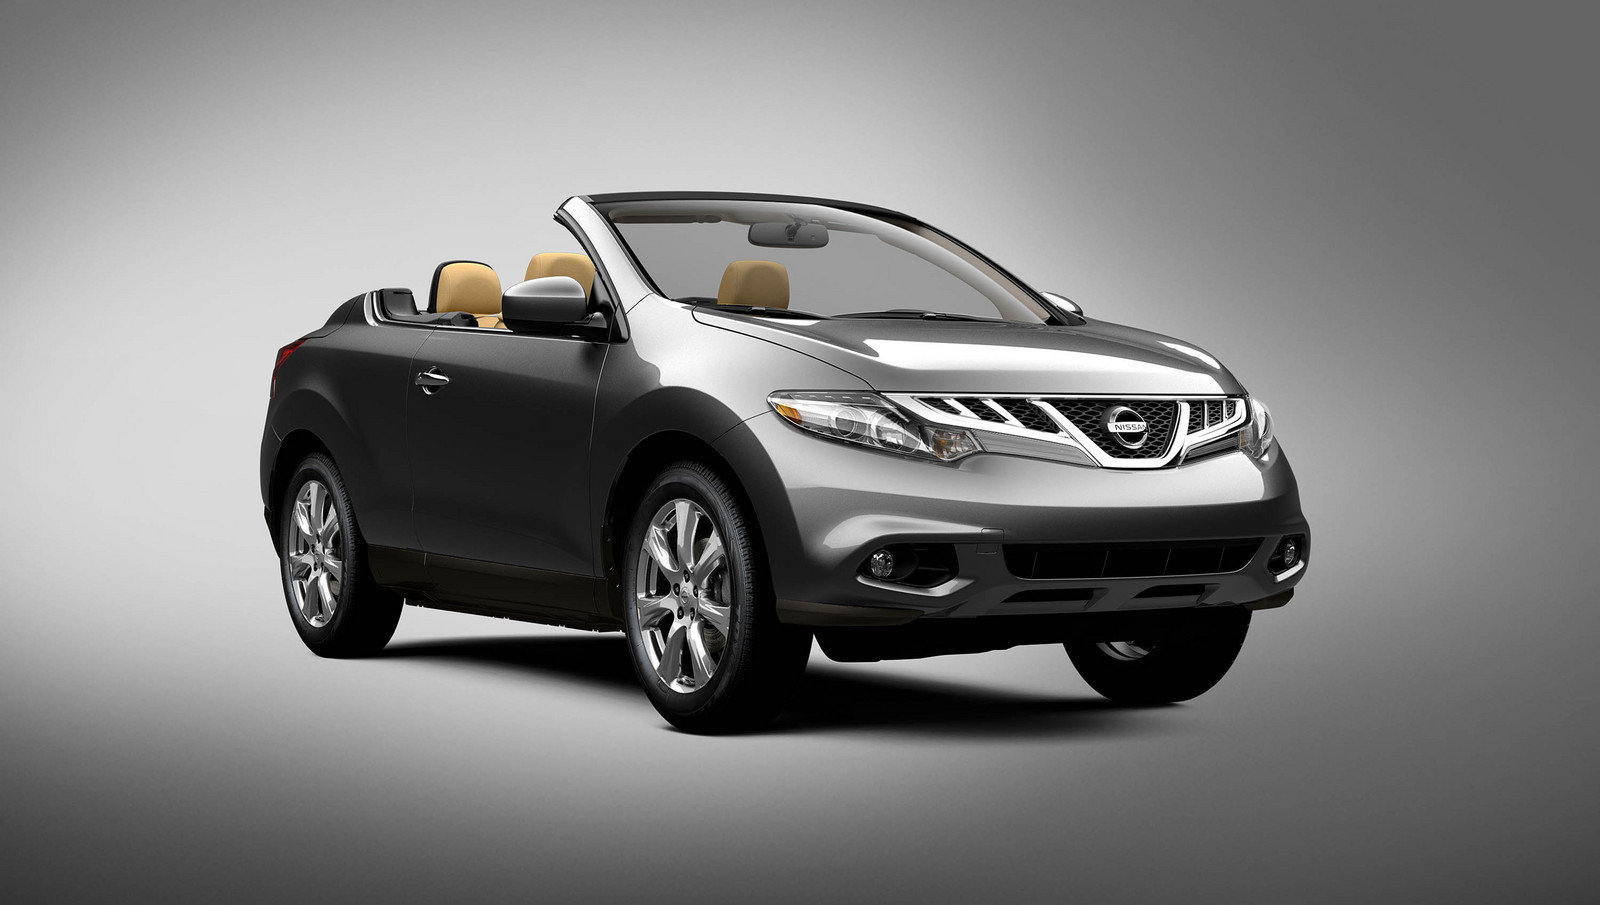 2014 nissan murano crosscabriolet review top speed. Black Bedroom Furniture Sets. Home Design Ideas